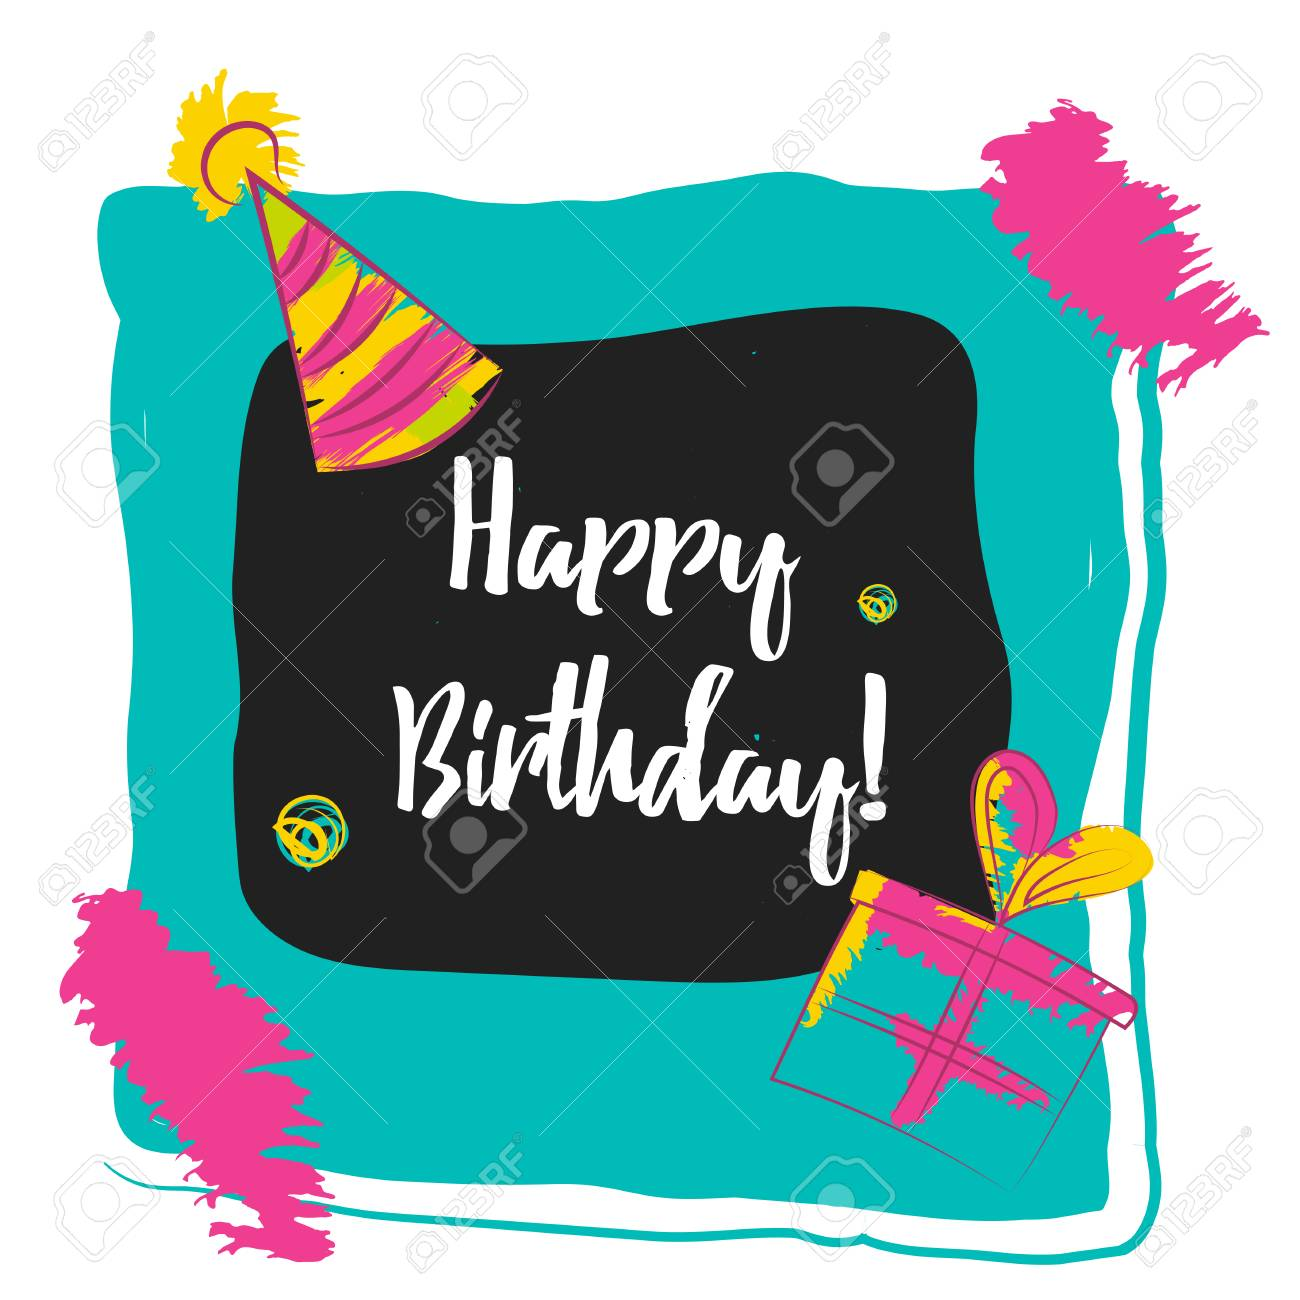 happy birthday wall posters ; 60205506-happy-birthday-typography-in-photo-frame-concept-image-poster-for-wall-art-prints-mock-up-home-inter